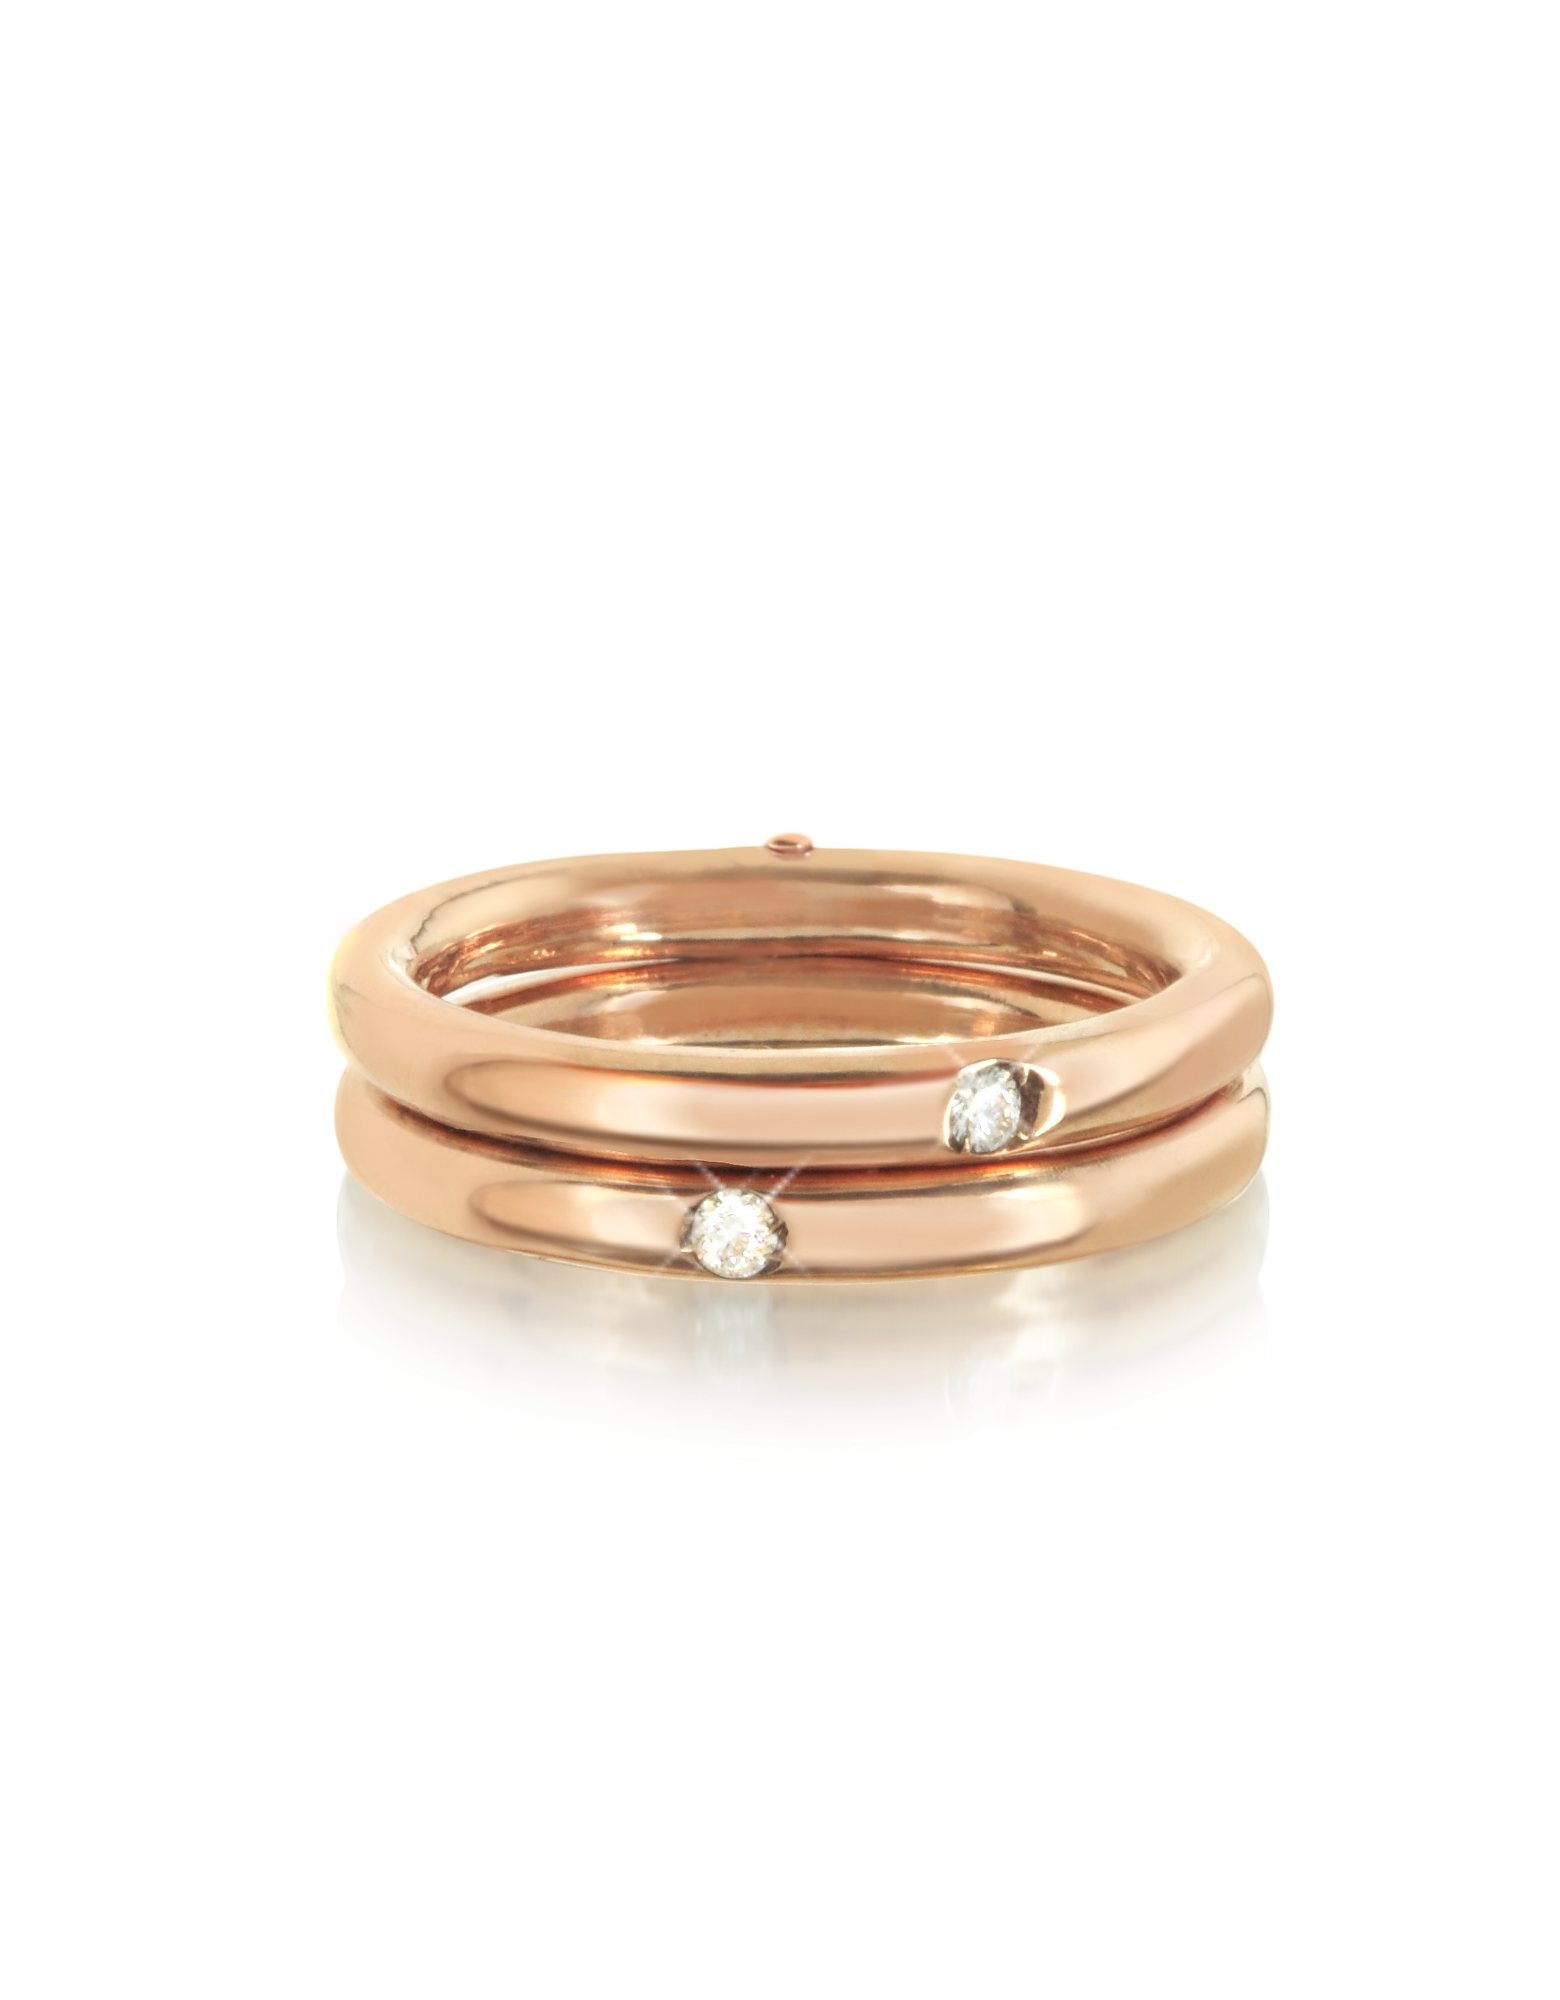 Bernard Delettrez Rings, 9K Pink Gold Double Secret Ring w/Diamonds